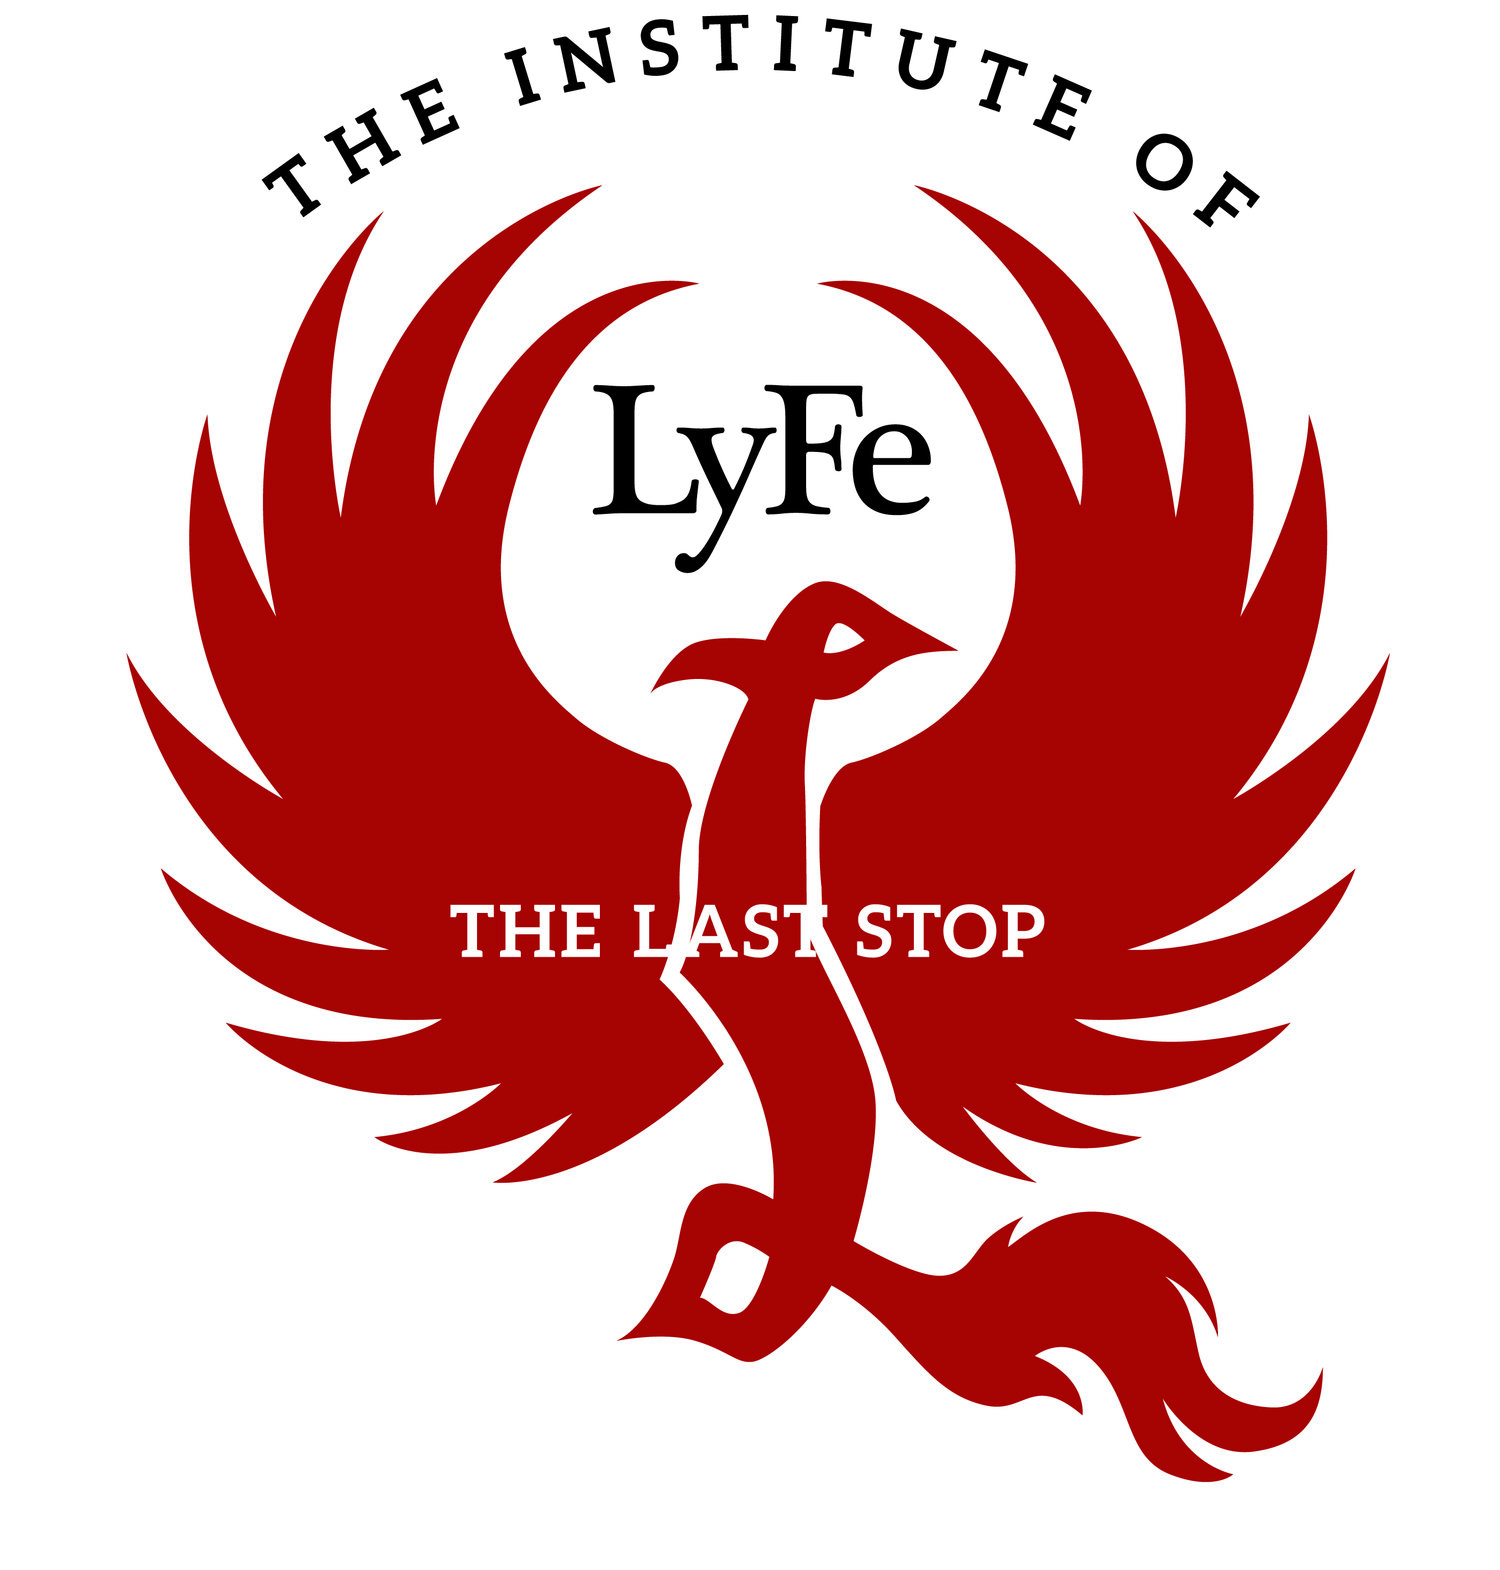 Institute of LyFe